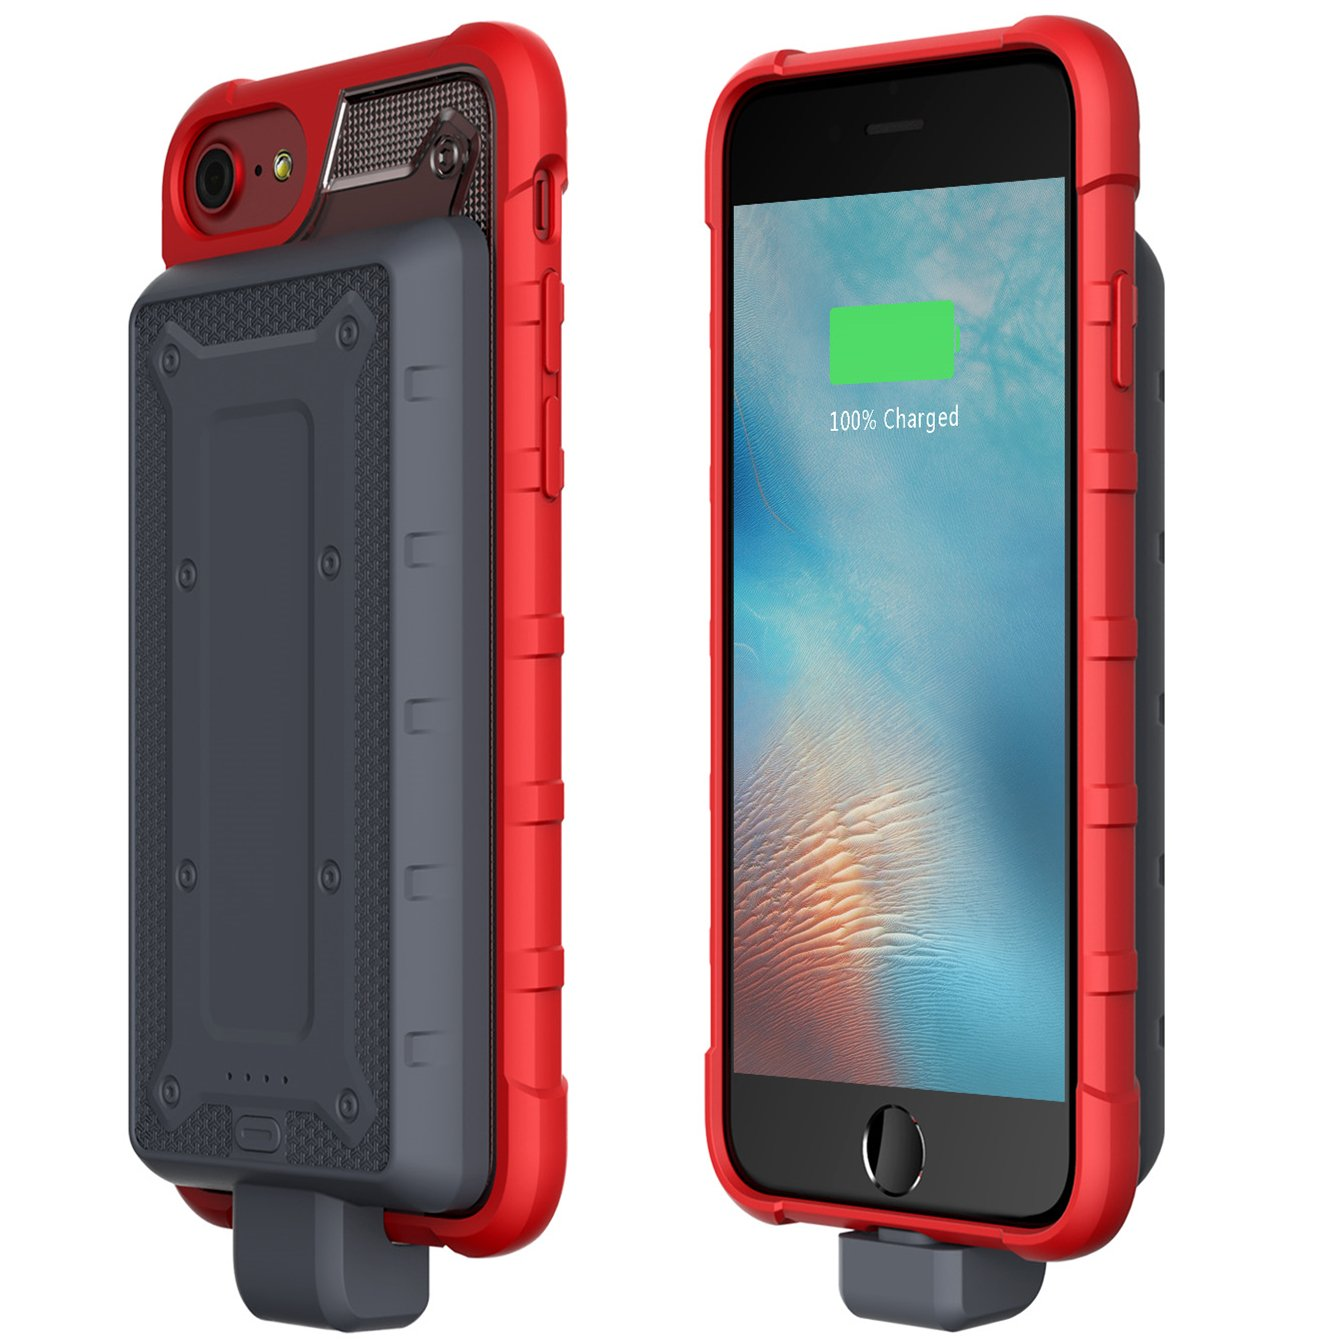 Greatfine iPhone 8/7 /6 /6s Charging Case, 4800mAh Portable Battery Bank + Protective Case Unique Disassembled Design Extended Battery Case (Red)